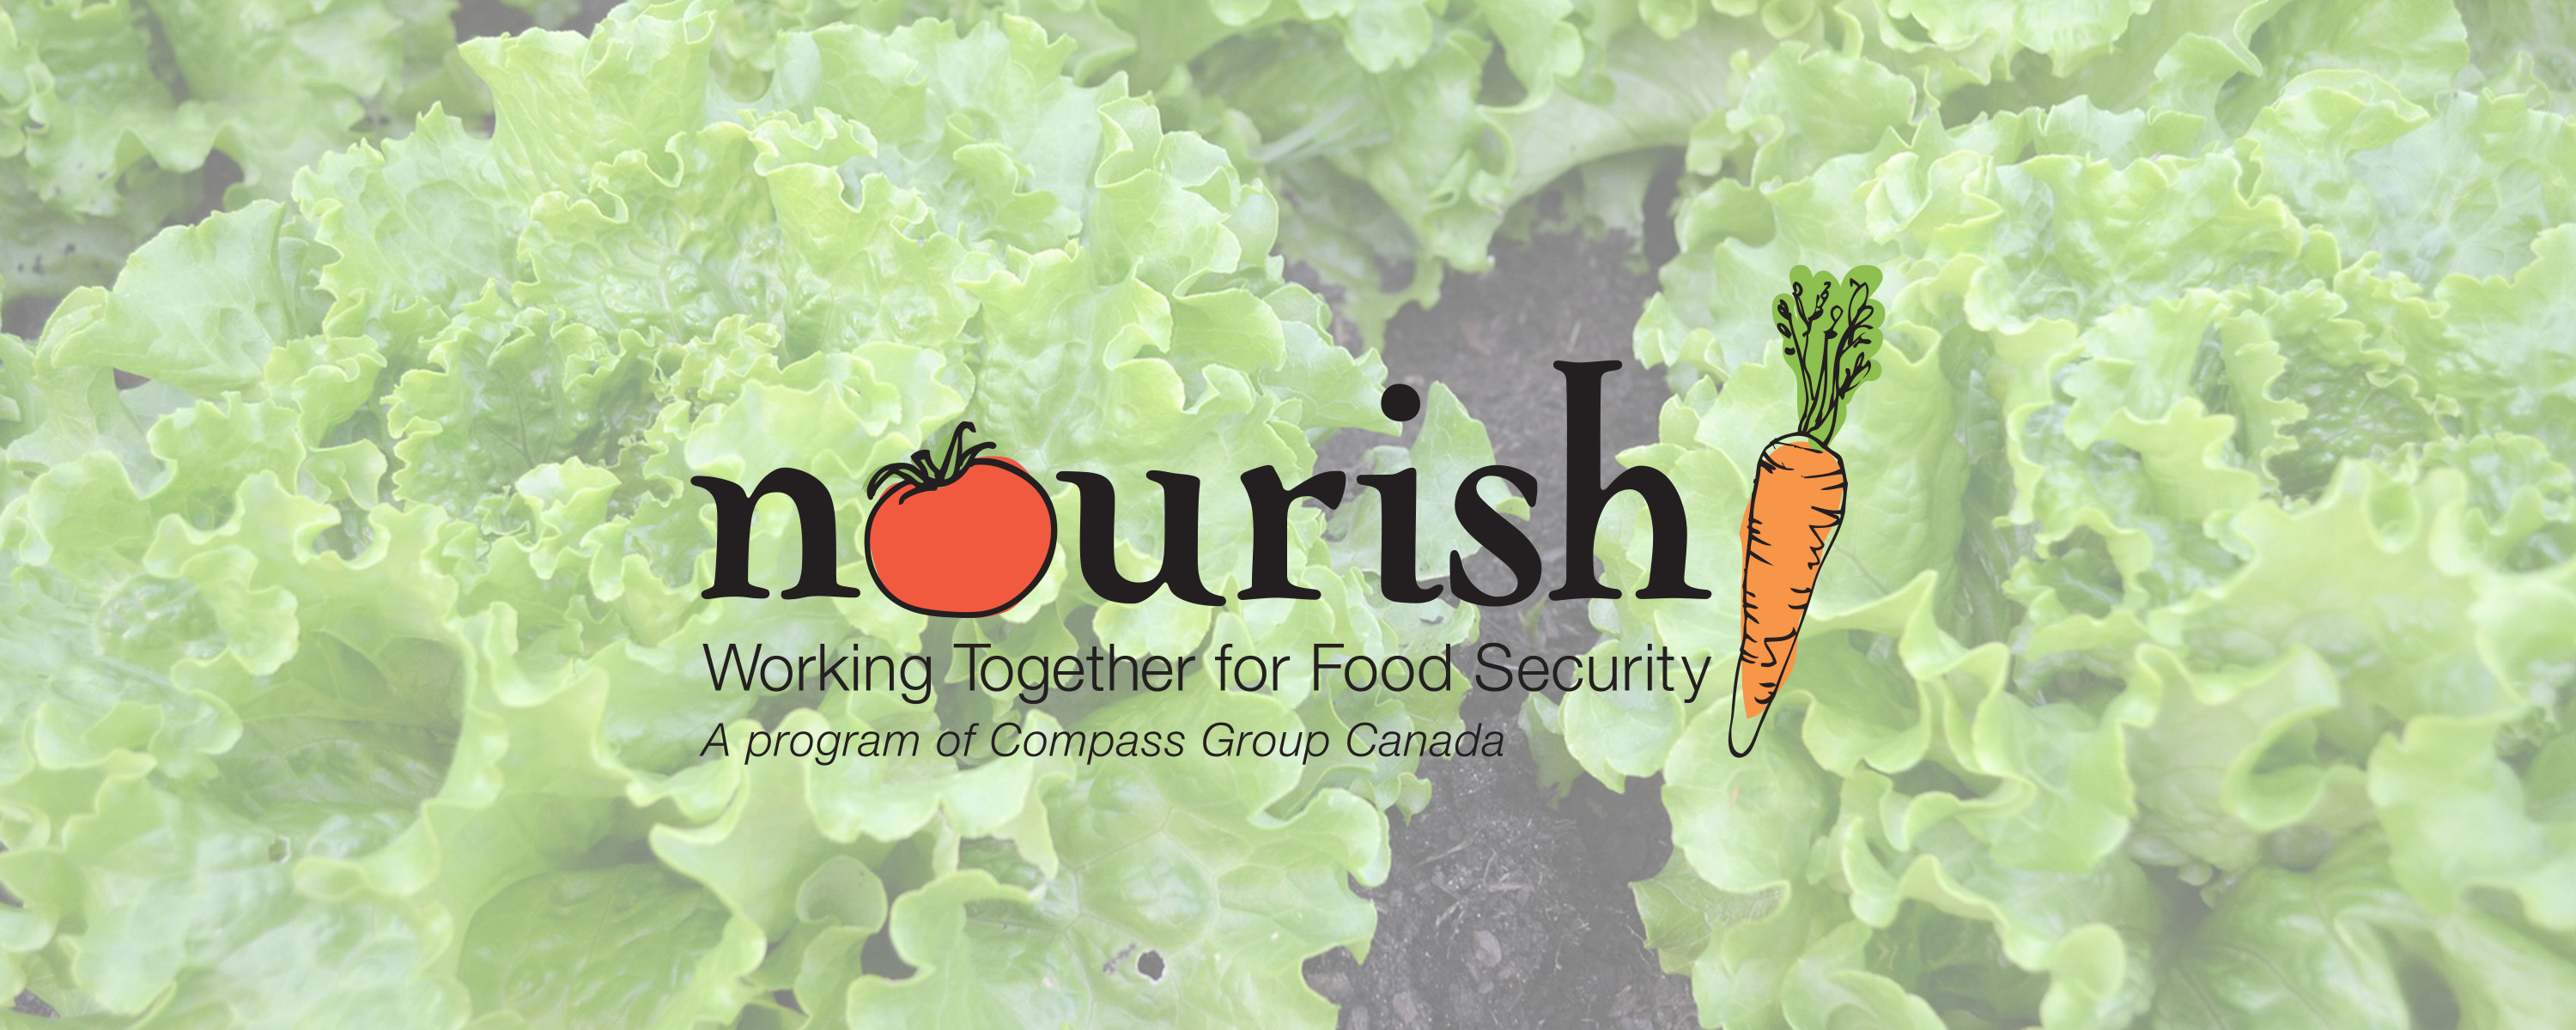 nourish: working together for food security, a program of Compass Group Canada